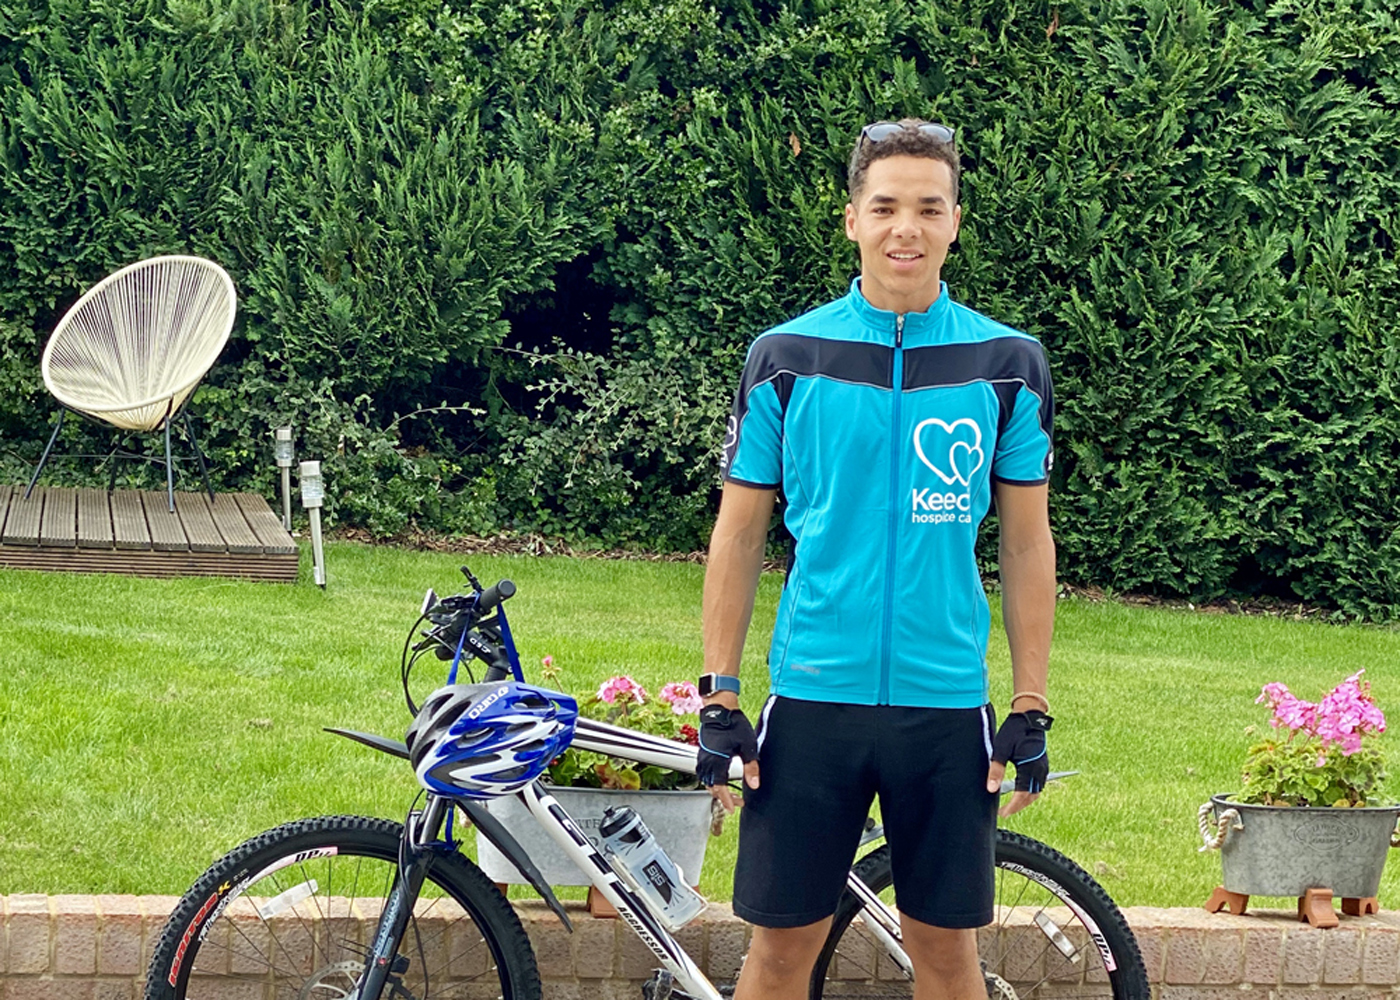 St. Joseph's Scout Leader  Takes On Keech Cycling Challenge